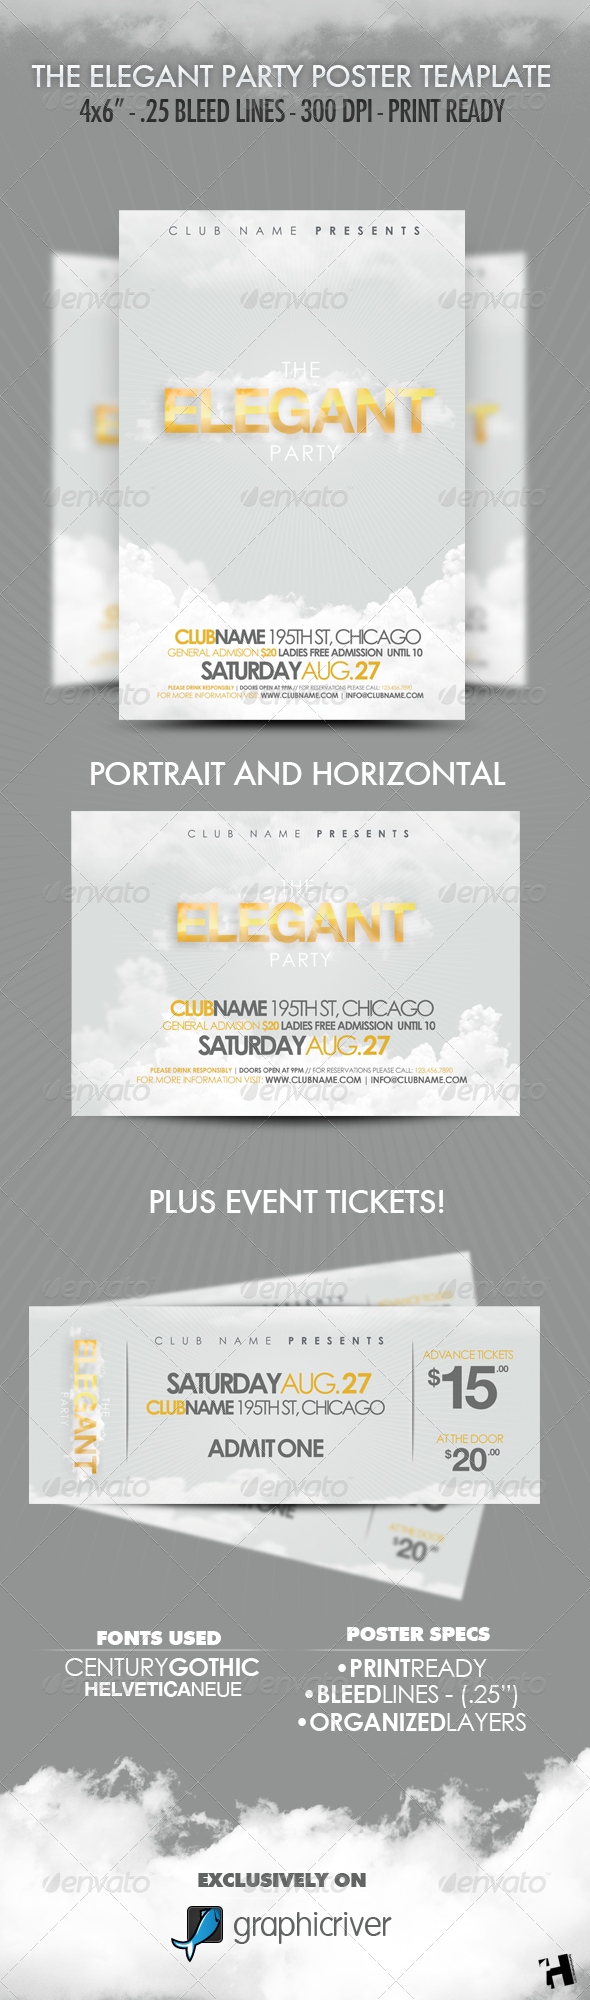 The Elegant Party - Flyer Template - Clubs & Parties Events